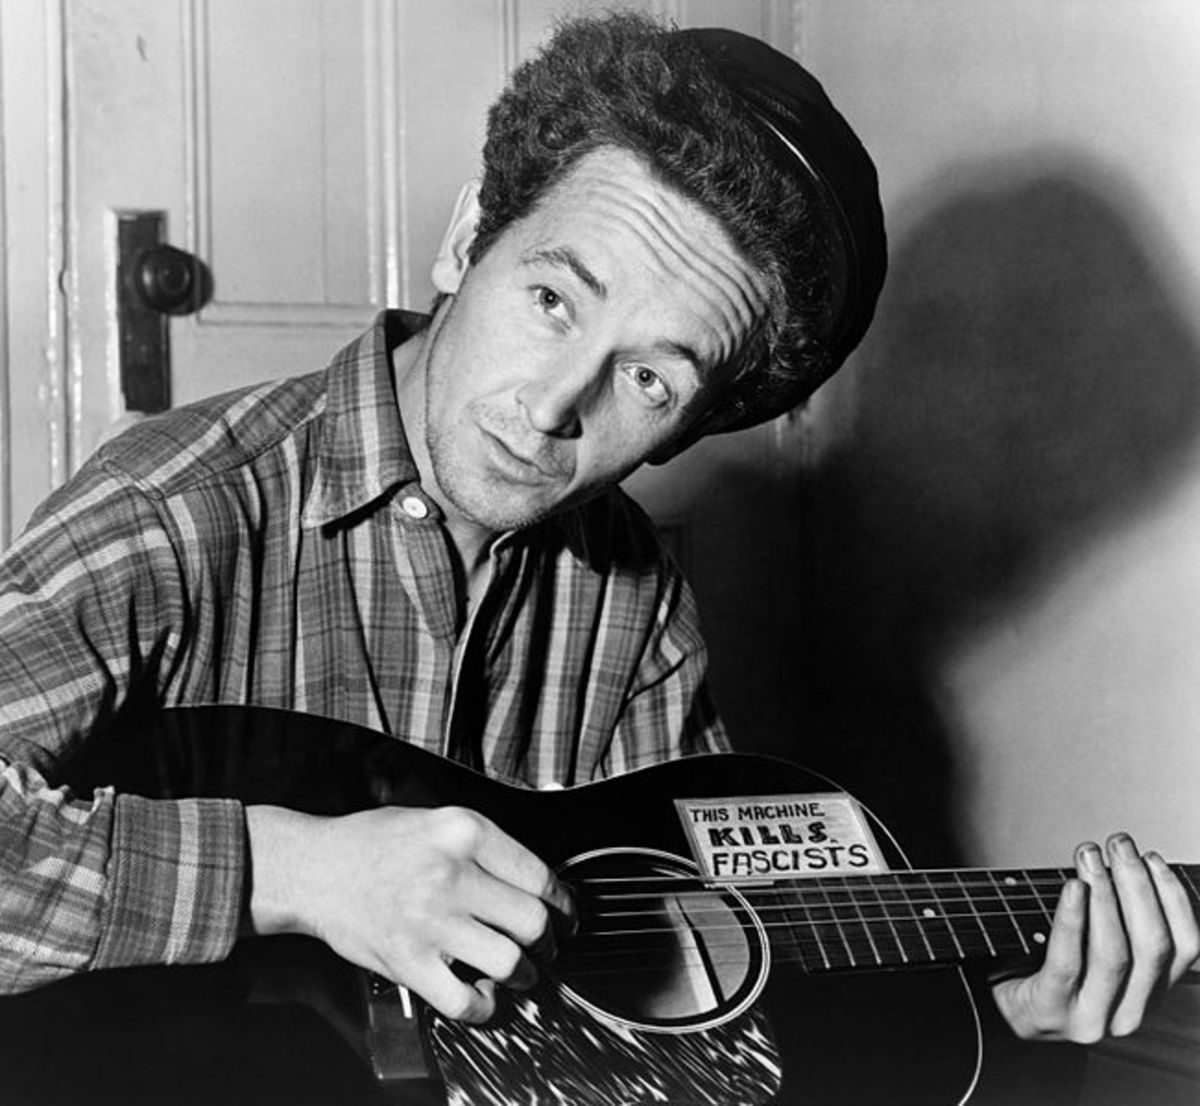 Woody Guthrie This Machine Kills Fascists Folk Singer Armed With His Weapon